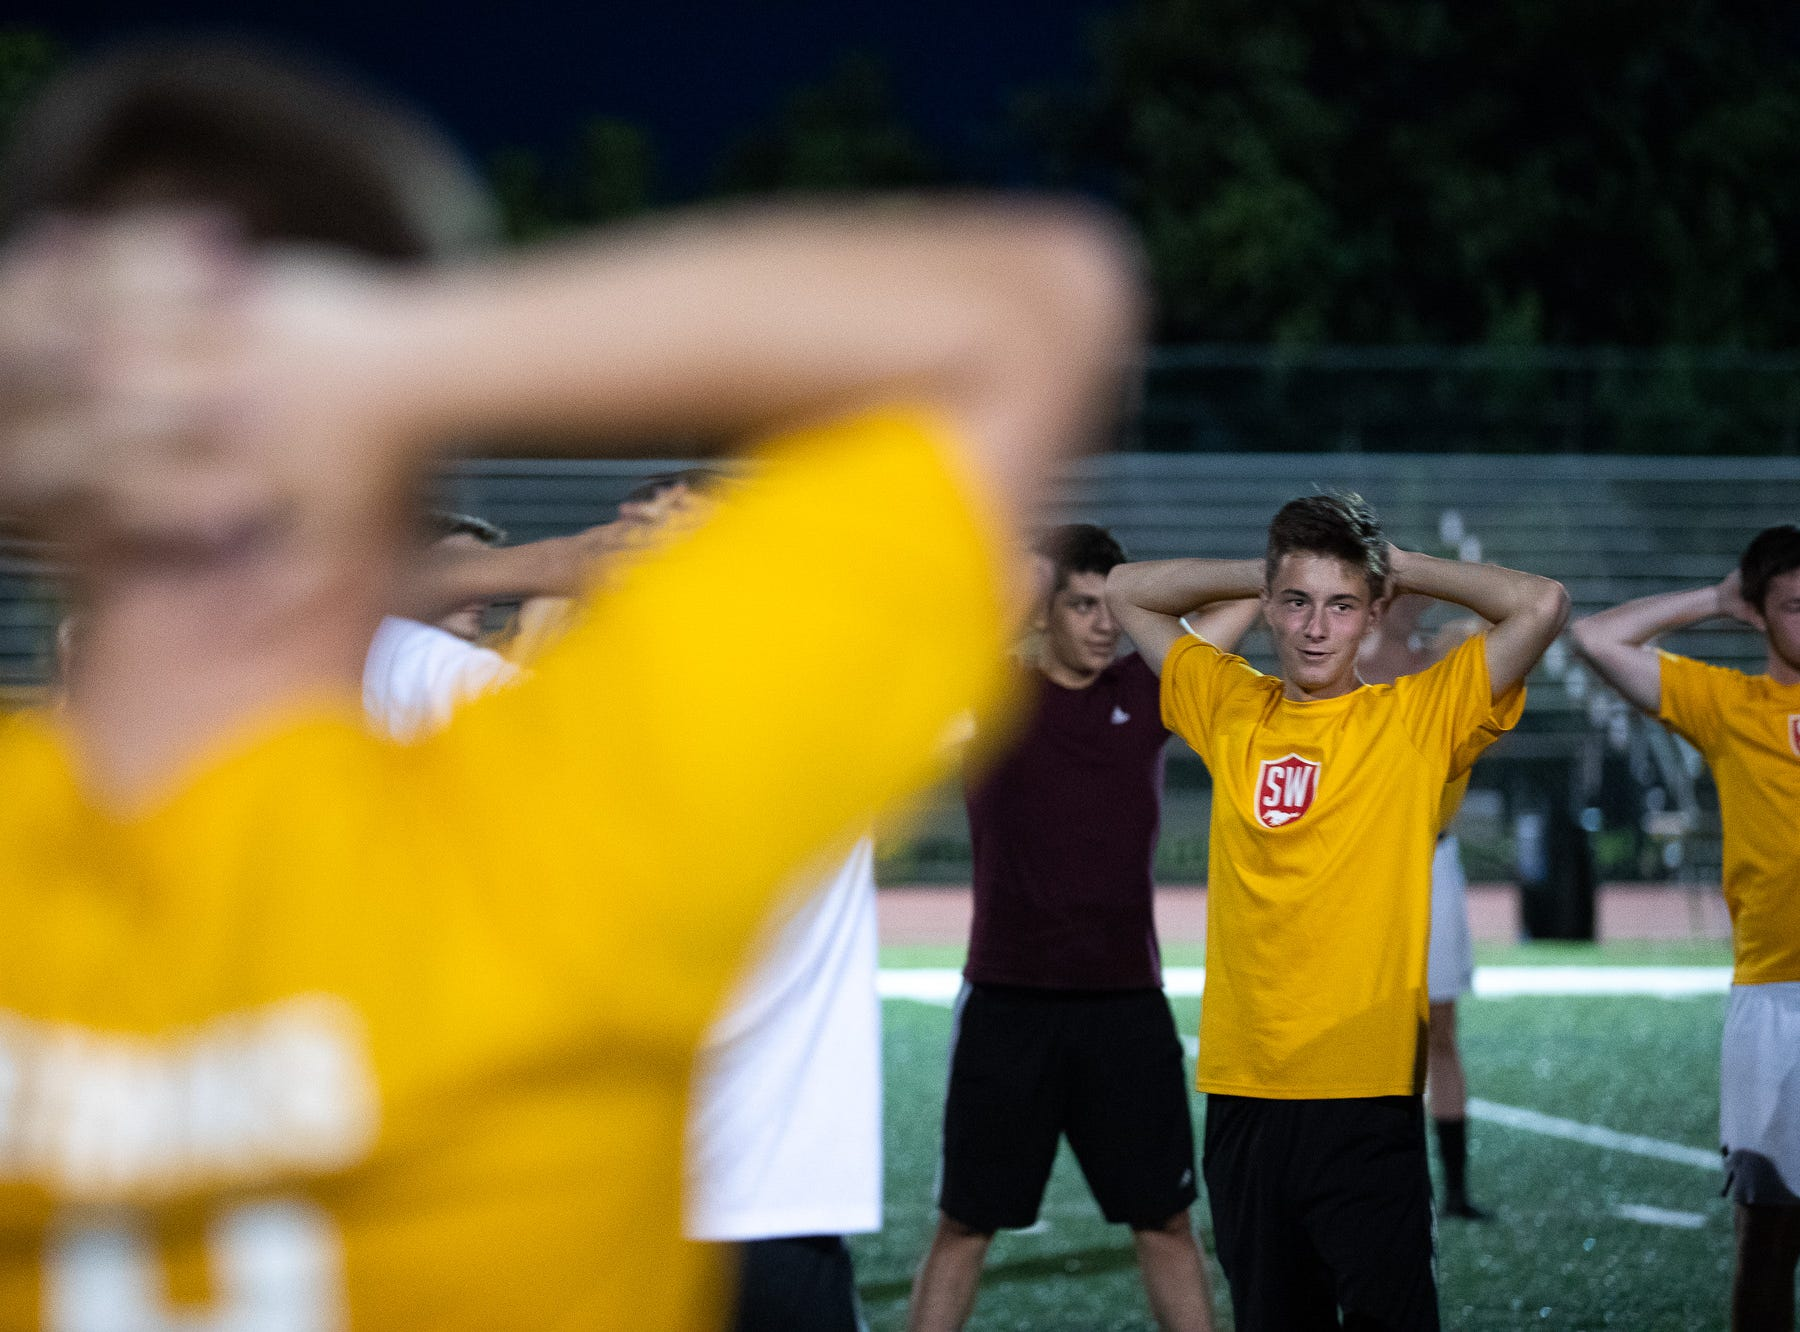 The South Western Boys Soccer team scretch on the first day of fall sports practice, Monday, Aug. 13, 2018, at South Western High School.